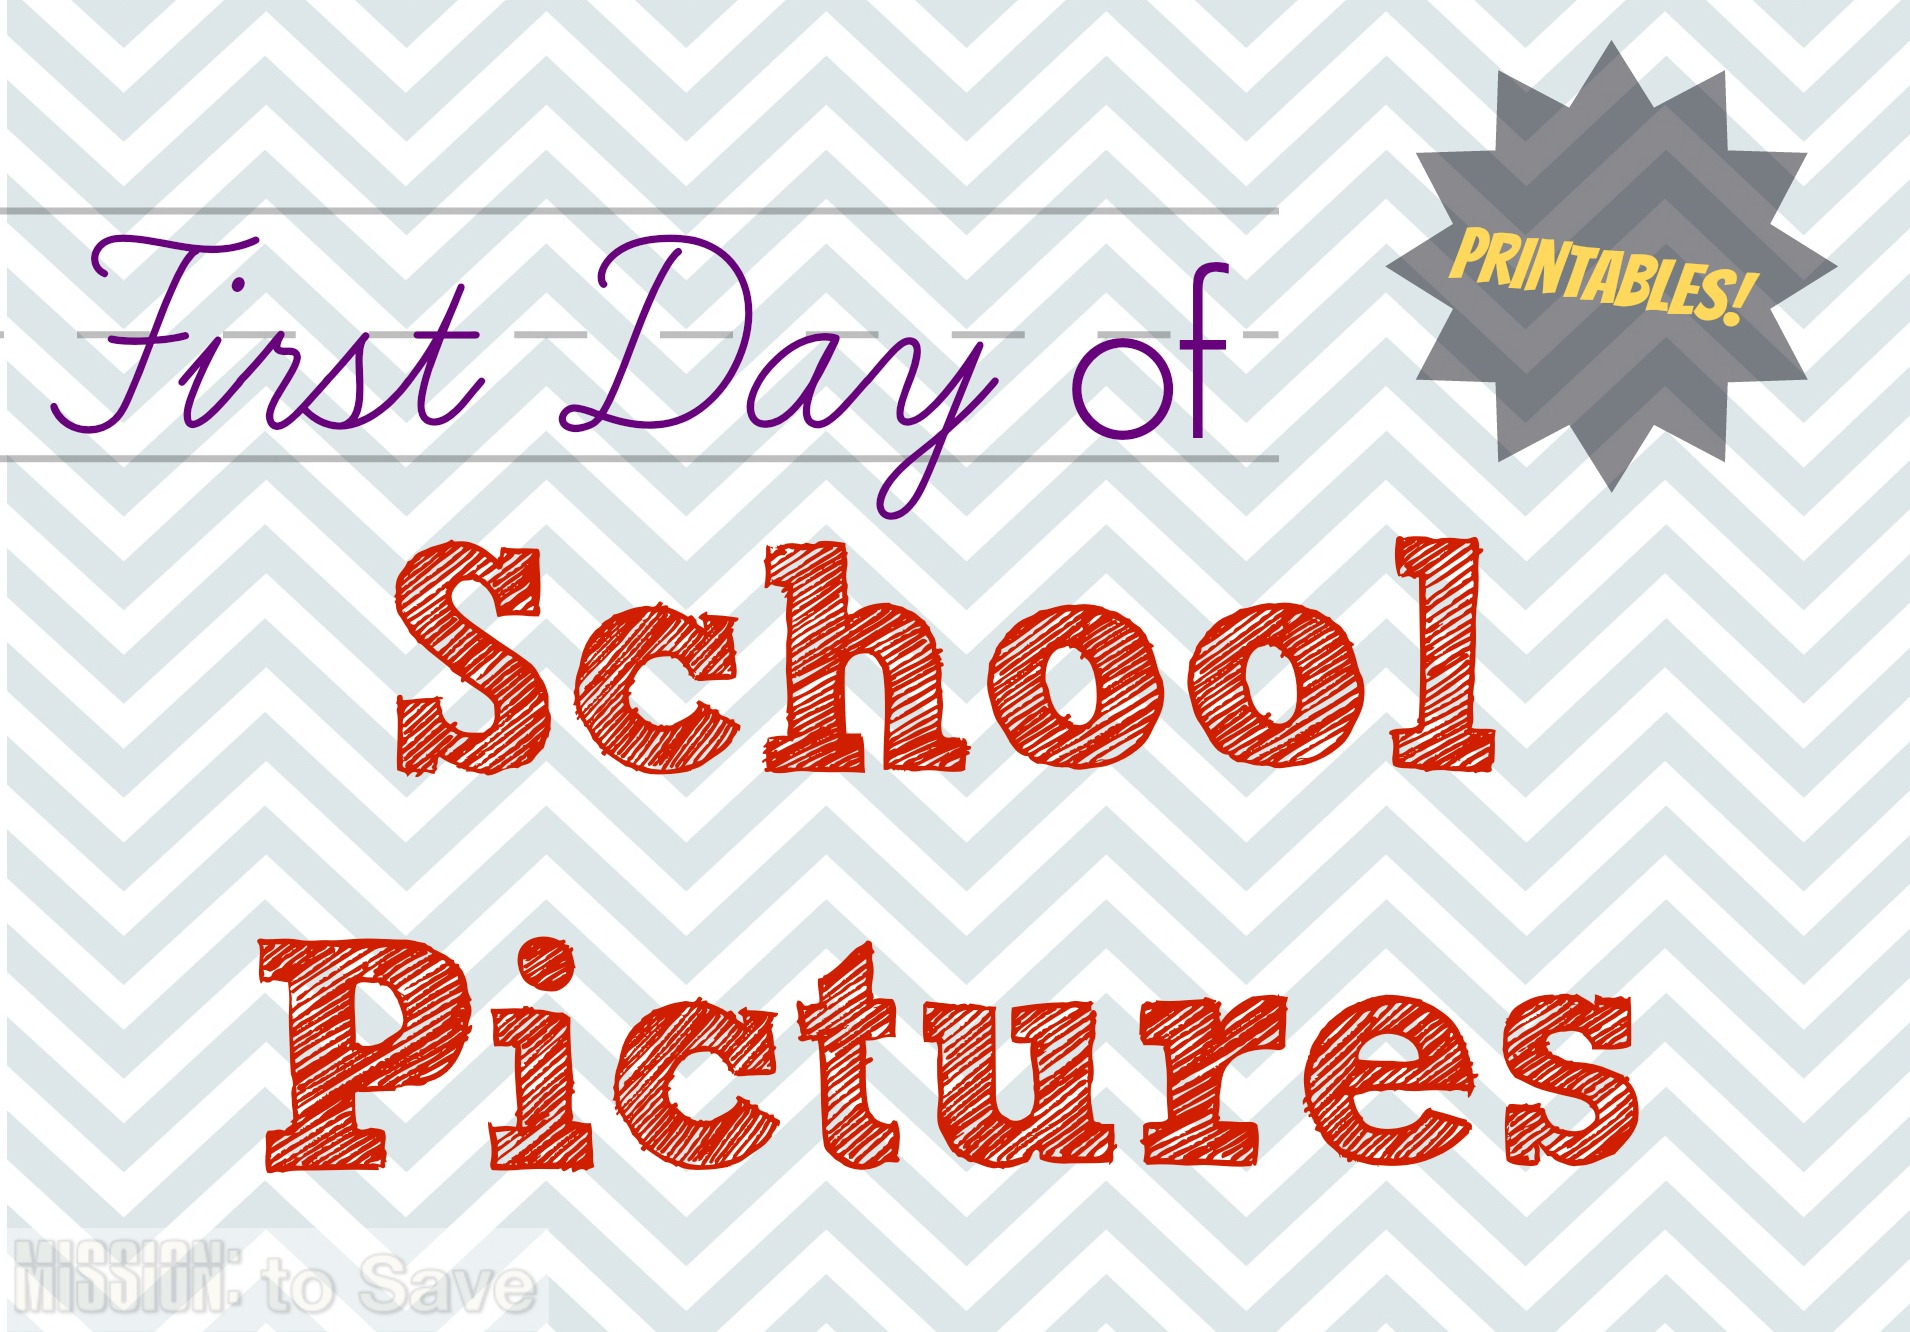 First Day of School Pictures Printables